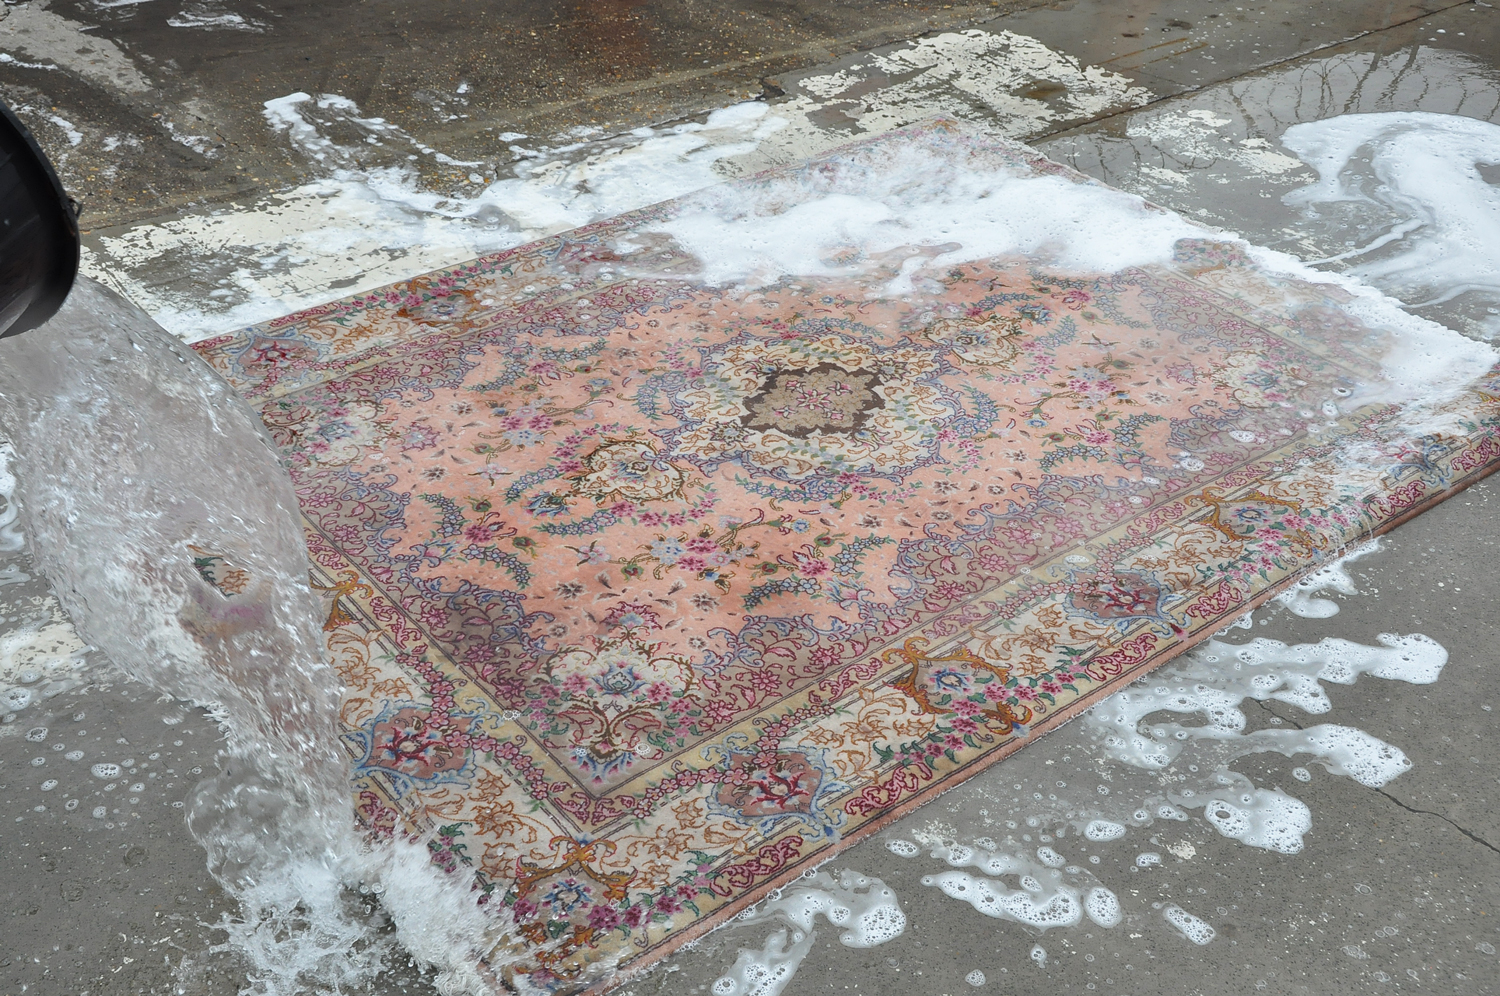 Cleaning-process-karimi-rug-03.jpg